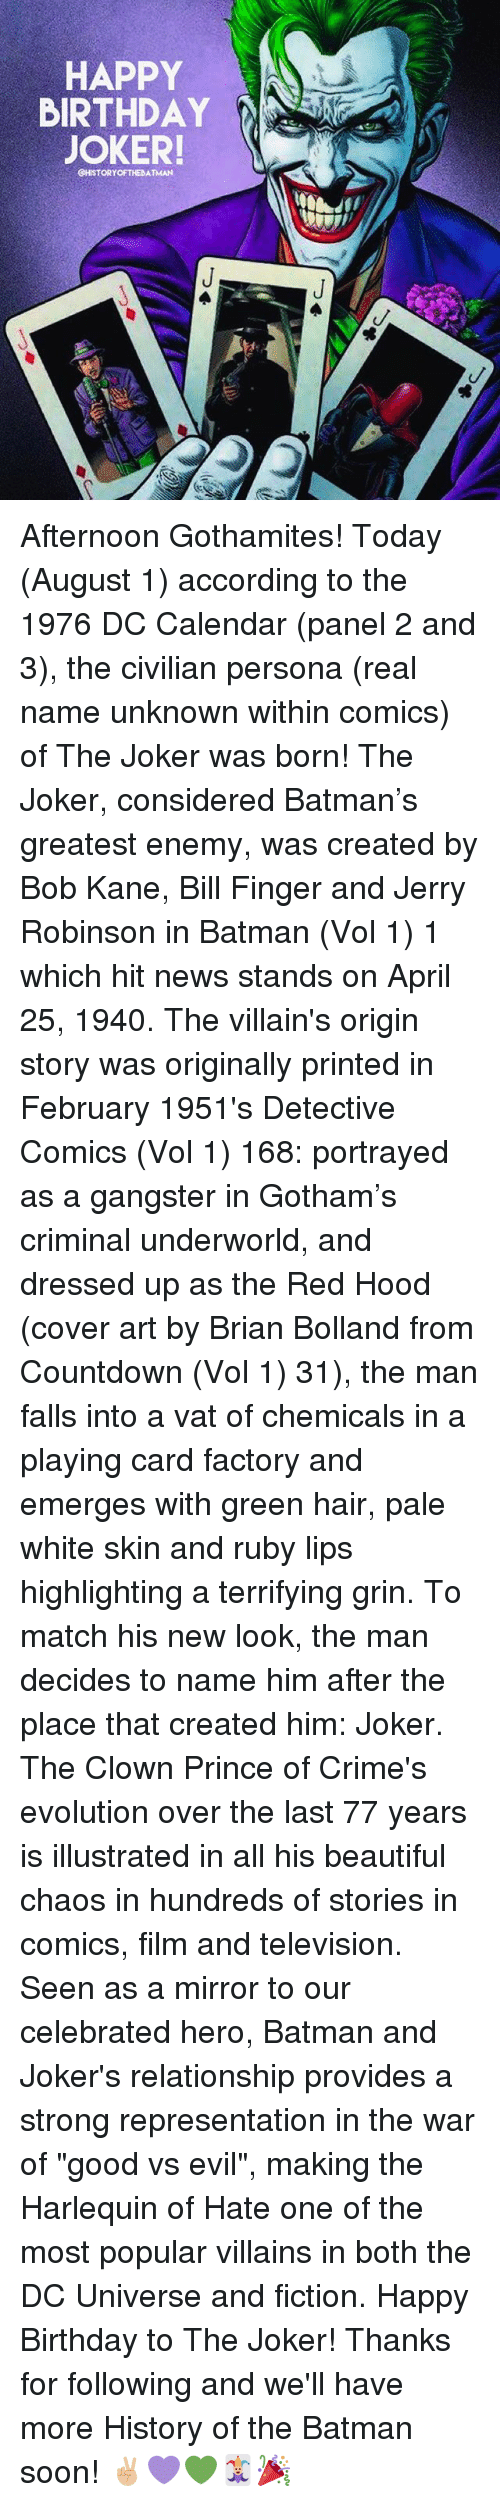 "Batman, Beautiful, and Birthday: HAPPY  BIRTHDAY  JOKER!  CHISTORYOFTHEBATMAN Afternoon Gothamites! Today (August 1) according to the 1976 DC Calendar (panel 2 and 3), the civilian persona (real name unknown within comics) of The Joker was born! The Joker, considered Batman's greatest enemy, was created by Bob Kane, Bill Finger and Jerry Robinson in Batman (Vol 1) 1 which hit news stands on April 25, 1940. The villain's origin story was originally printed in February 1951's Detective Comics (Vol 1) 168: portrayed as a gangster in Gotham's criminal underworld, and dressed up as the Red Hood (cover art by Brian Bolland from Countdown (Vol 1) 31), the man falls into a vat of chemicals in a playing card factory and emerges with green hair, pale white skin and ruby lips highlighting a terrifying grin. To match his new look, the man decides to name him after the place that created him: Joker. The Clown Prince of Crime's evolution over the last 77 years is illustrated in all his beautiful chaos in hundreds of stories in comics, film and television. Seen as a mirror to our celebrated hero, Batman and Joker's relationship provides a strong representation in the war of ""good vs evil"", making the Harlequin of Hate one of the most popular villains in both the DC Universe and fiction. Happy Birthday to The Joker! Thanks for following and we'll have more History of the Batman soon! ✌🏼💜💚🃏🎉"